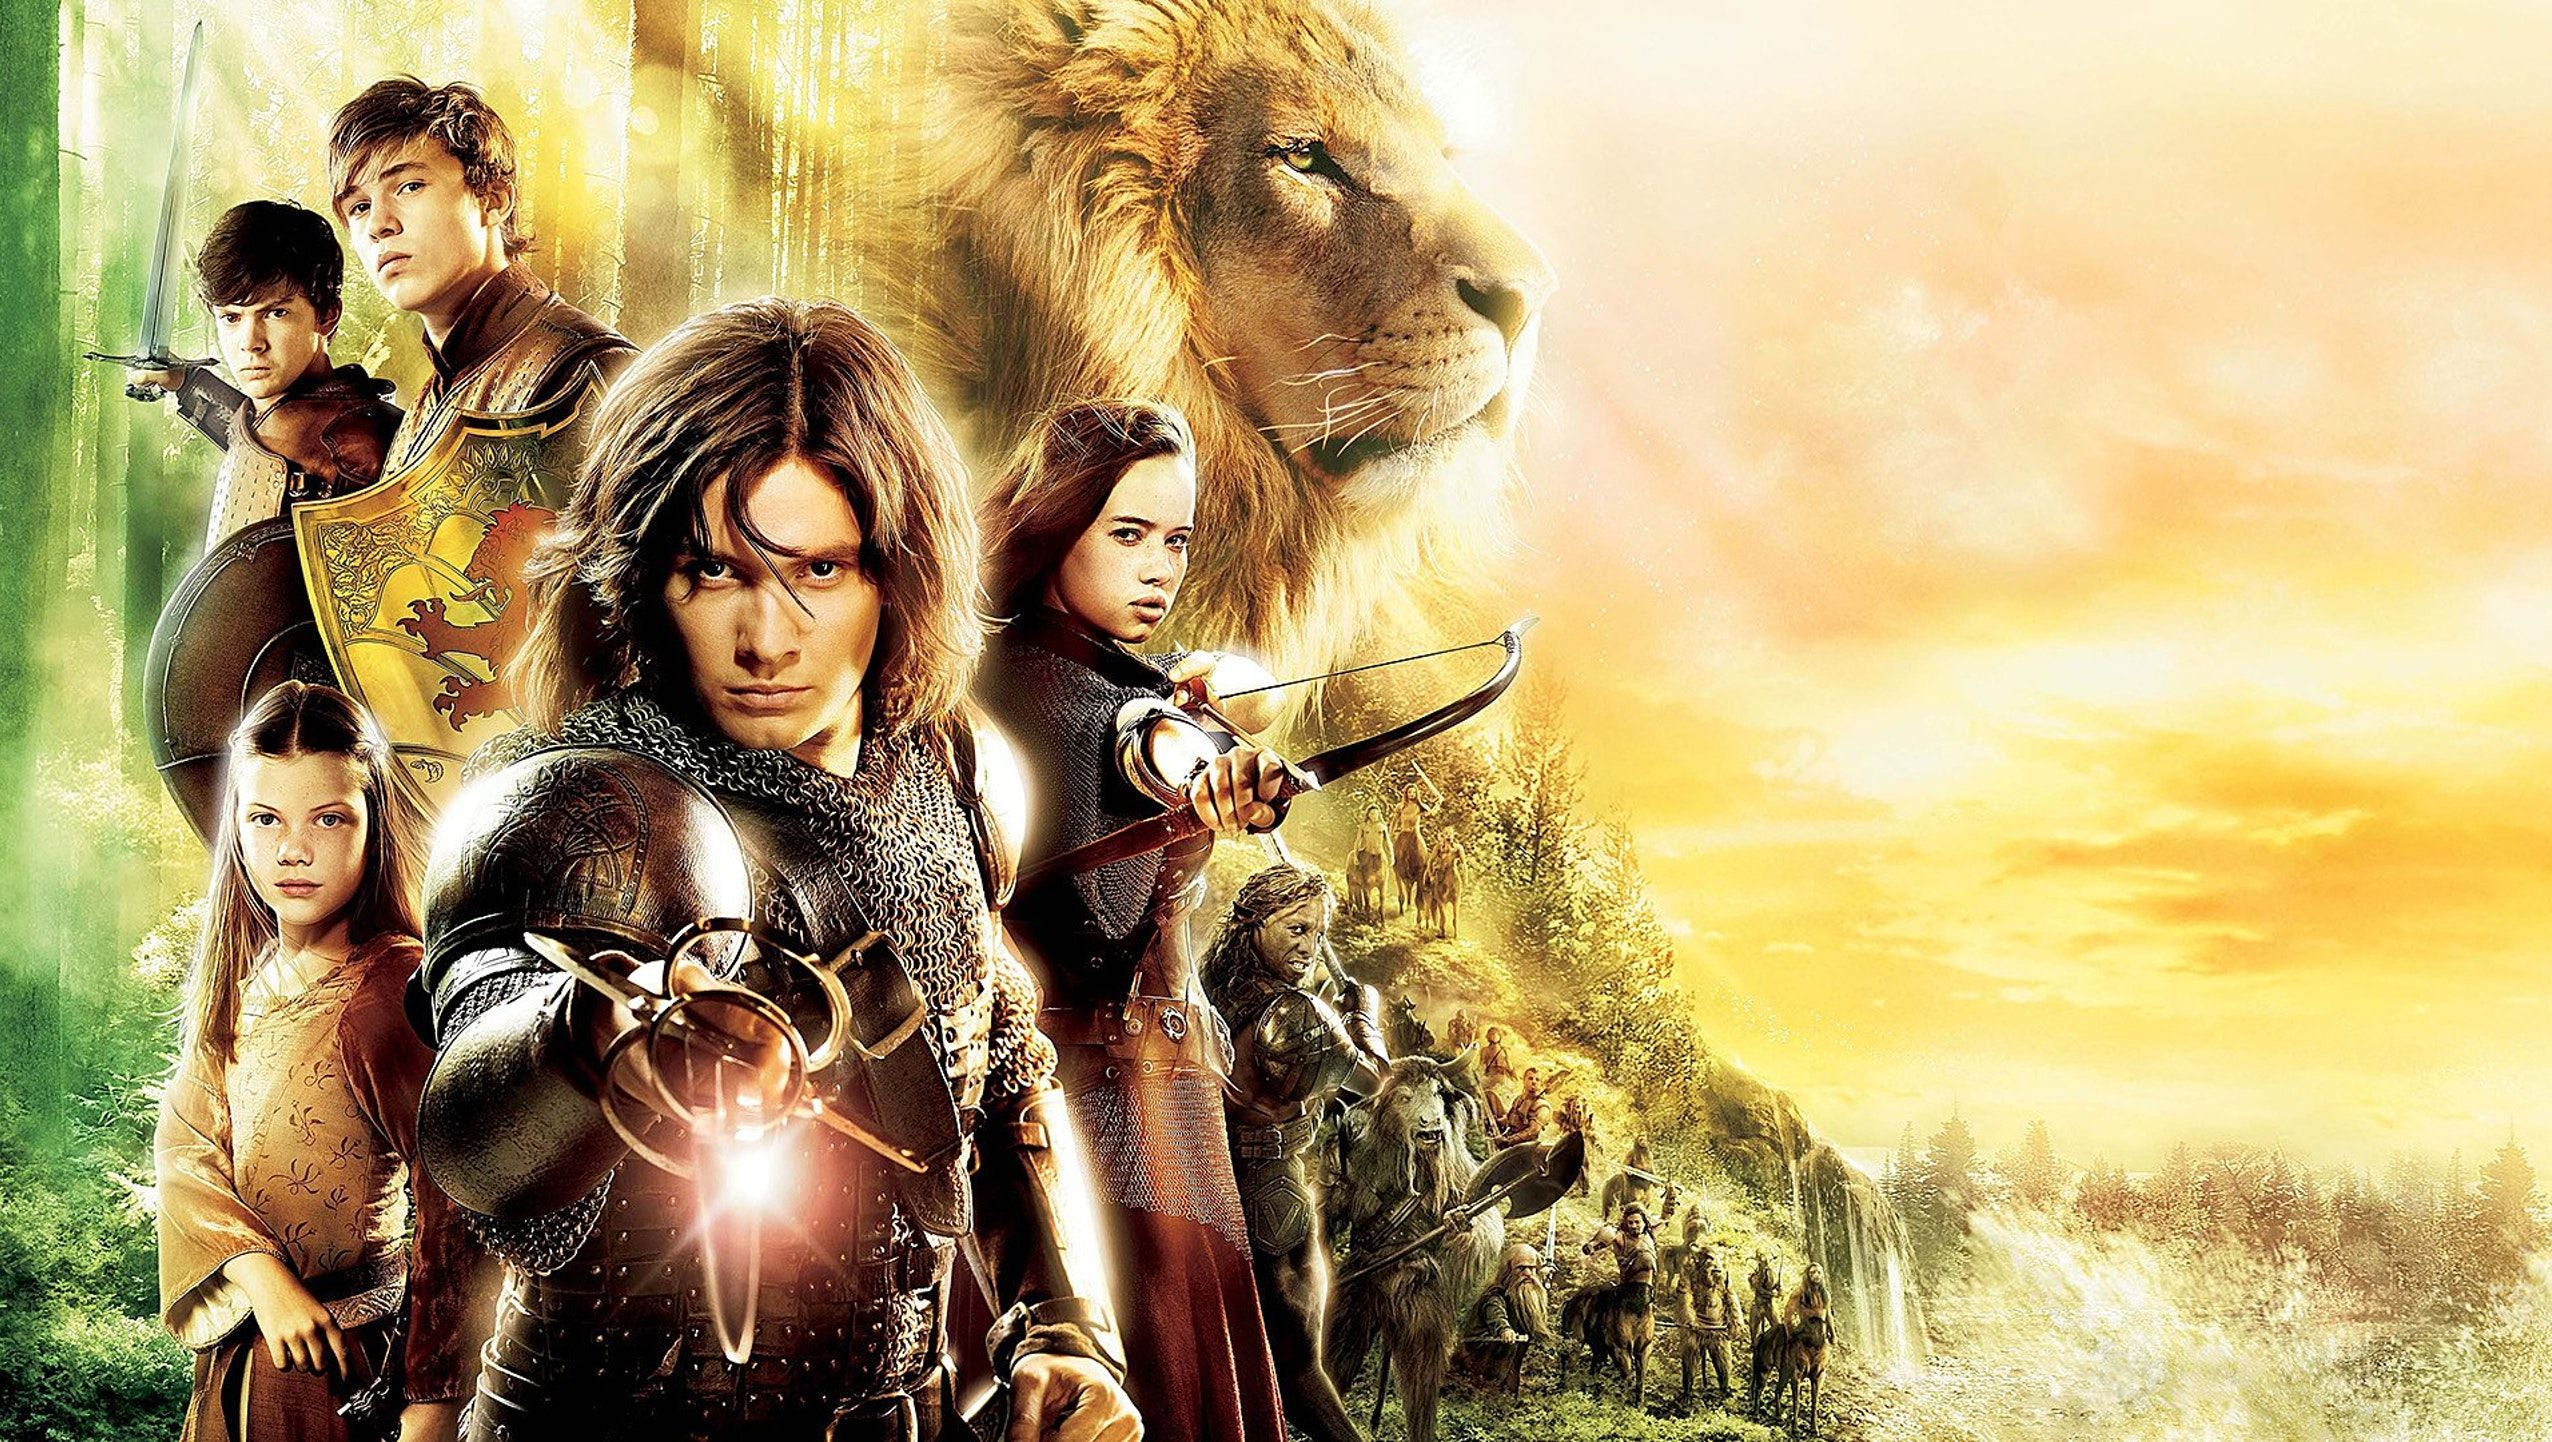 The Chronicles Of Narnia Prince Caspian 2008 Desktop Wallpaper Moviemania Narnia Prince Caspian Chronicles Of Narnia Prince Caspian